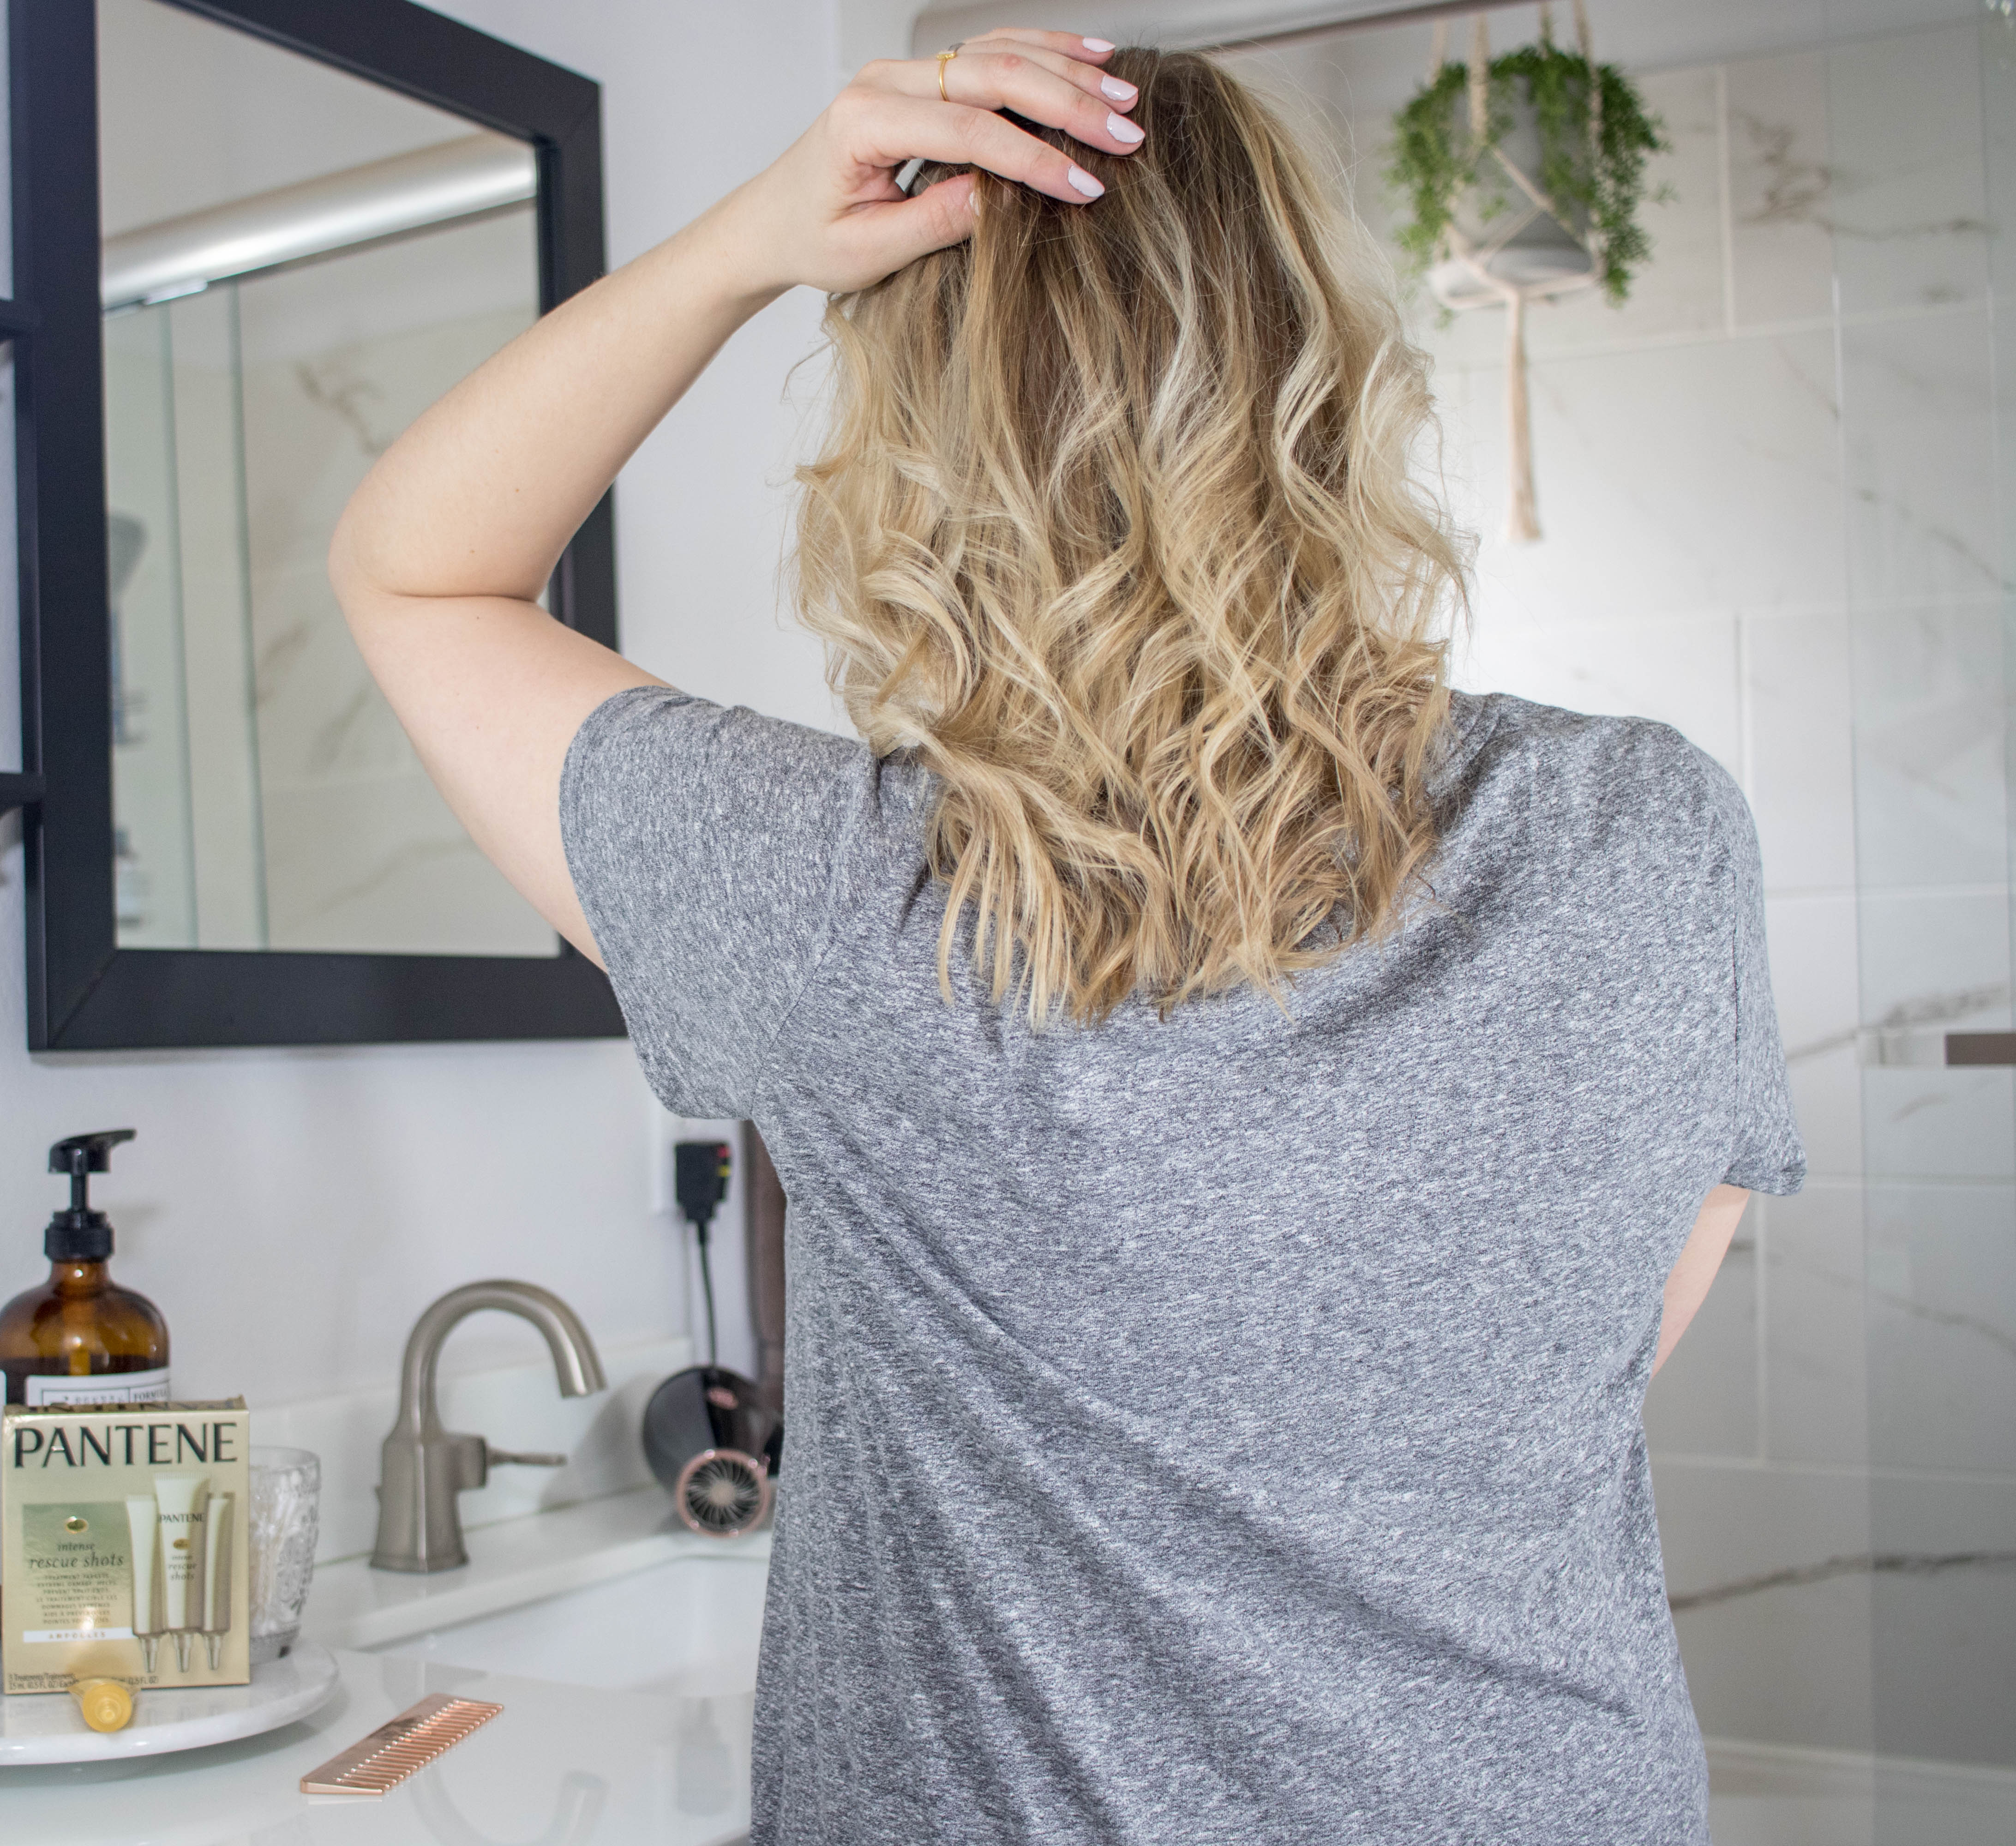 best haircare for blonde, color treated, fine hair #blondehair #pantene #hairproducts